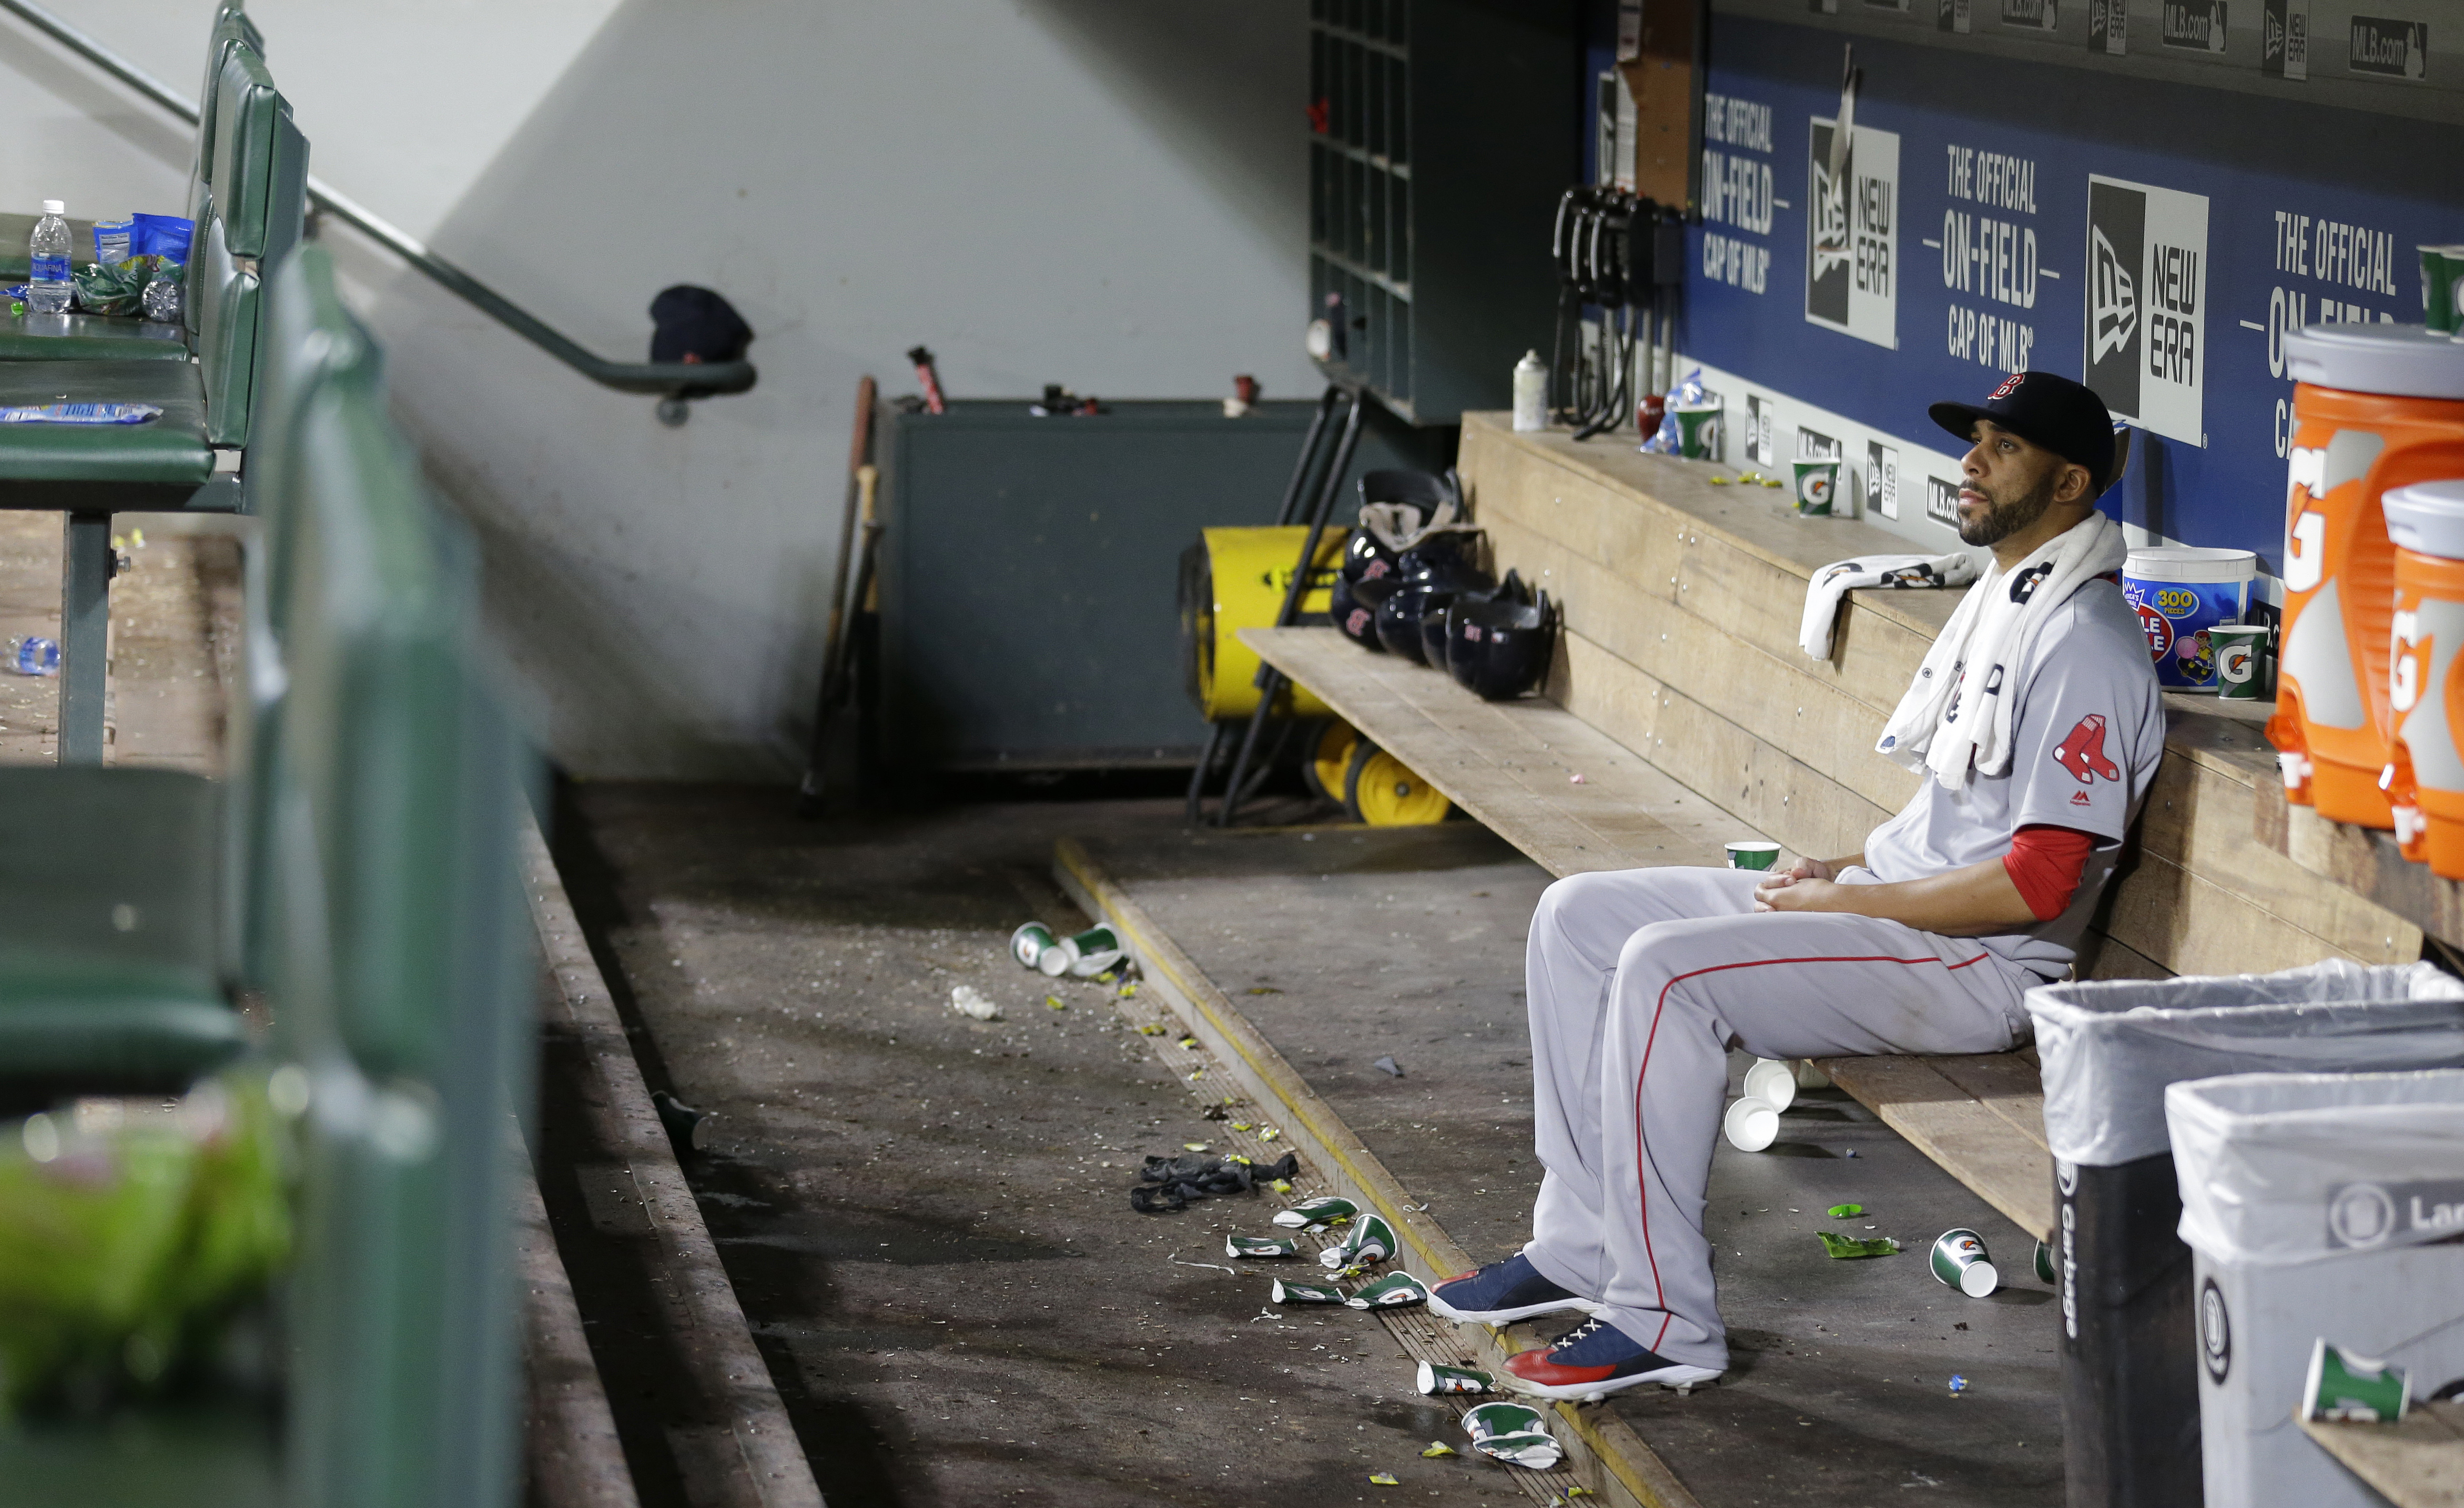 Boston Red Sox starting pitcher David Price sits alone in the dugout after the Seattle Mariners defeated the Red Sox 5-4 in a baseball game, Tuesday, Aug. 2, 2016, in Seattle. (AP Photo/Ted S. Warren)